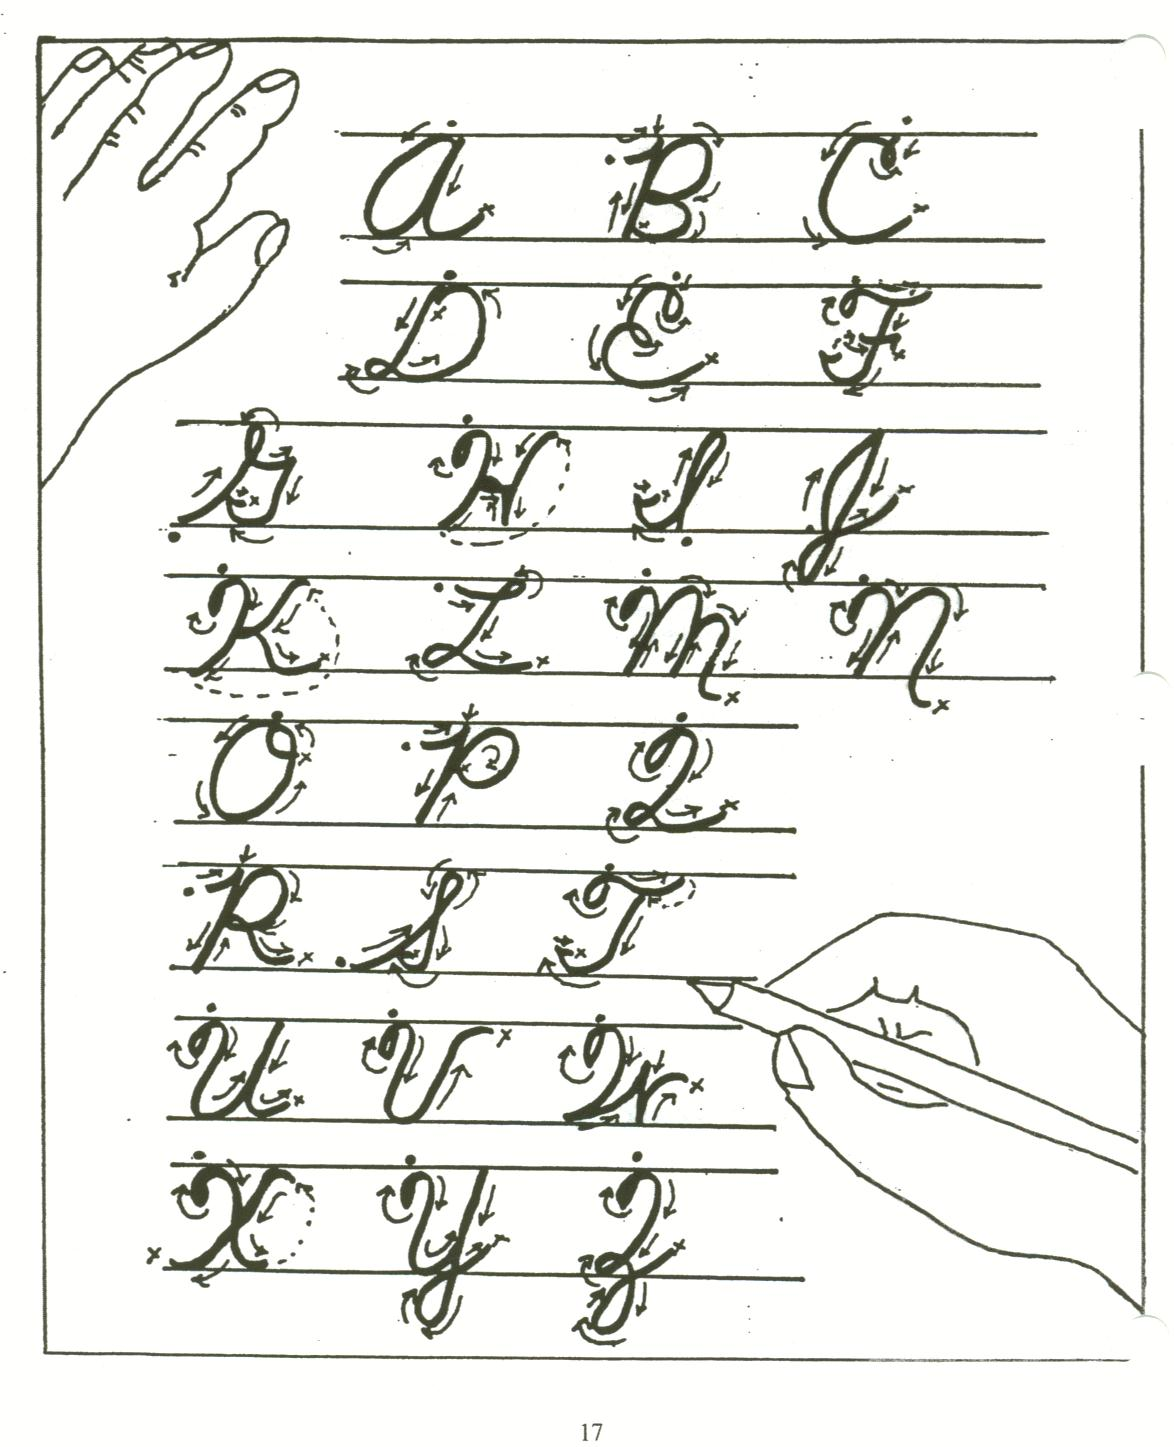 Printables Cursive Writing Worksheets For Adults handwriting homework worksheets further how to write cursive letters as well abitlikethis